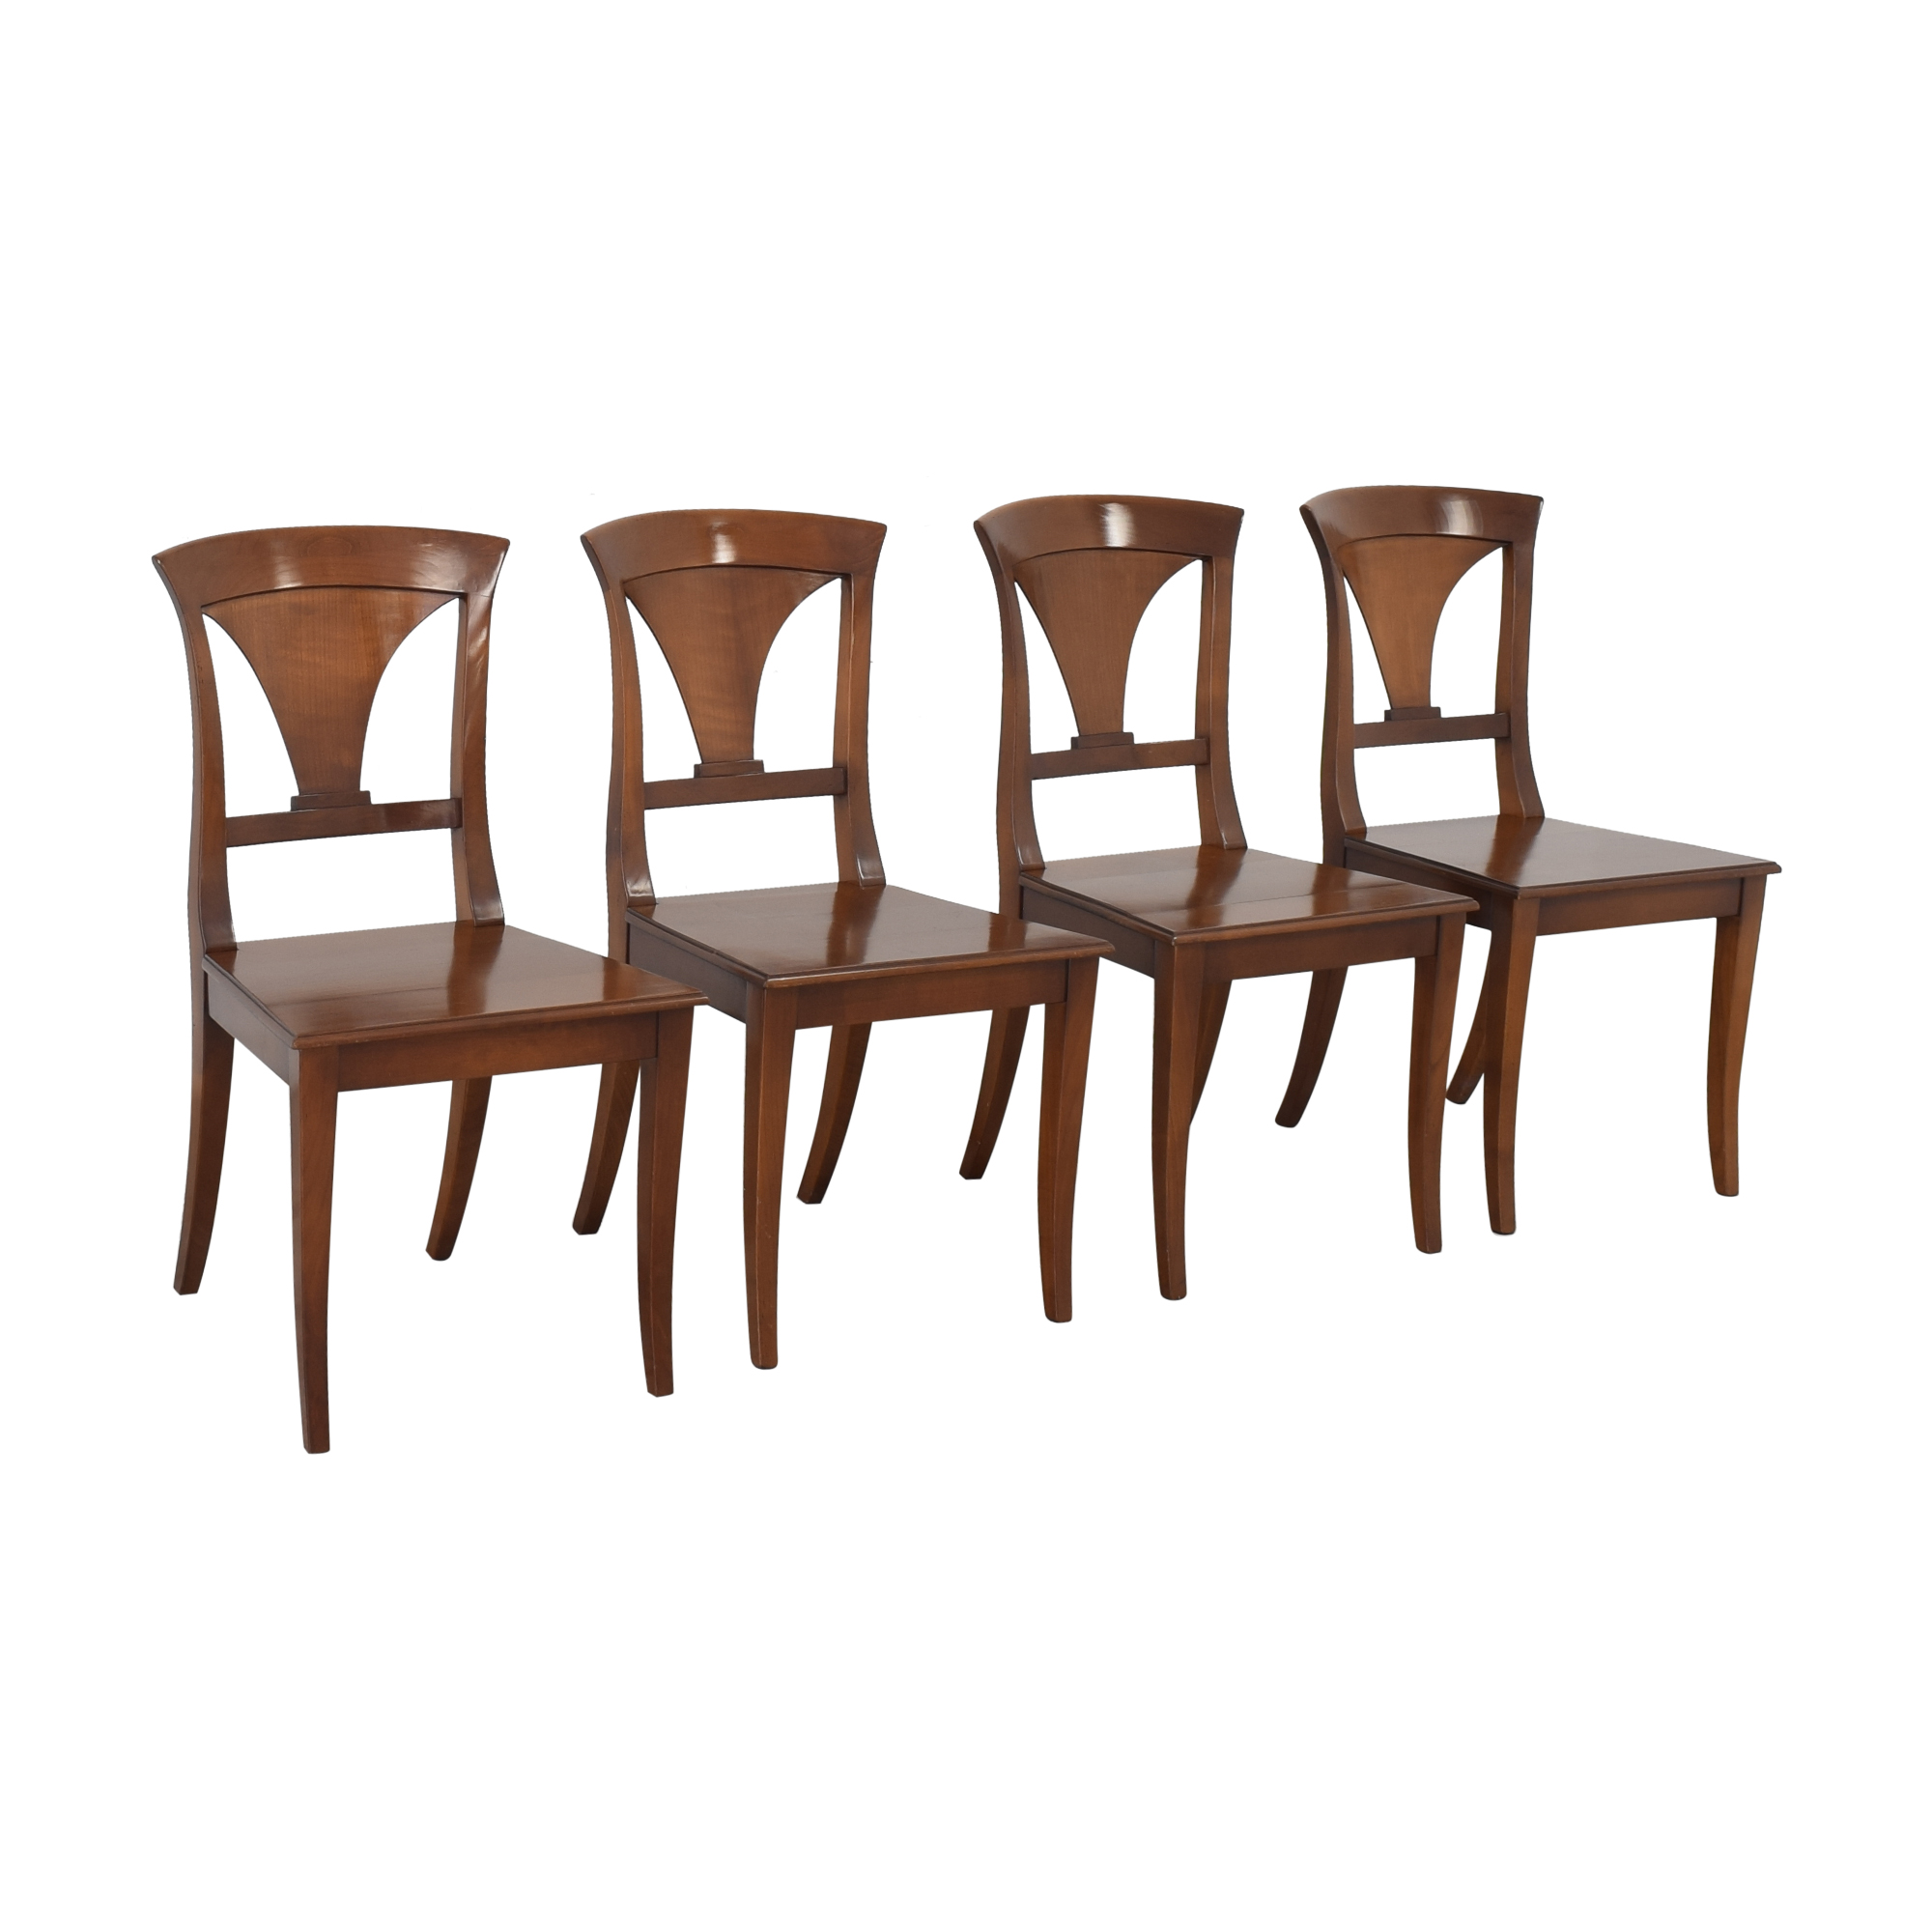 Pfister Pfister Swiss Style Dining Chairs brown